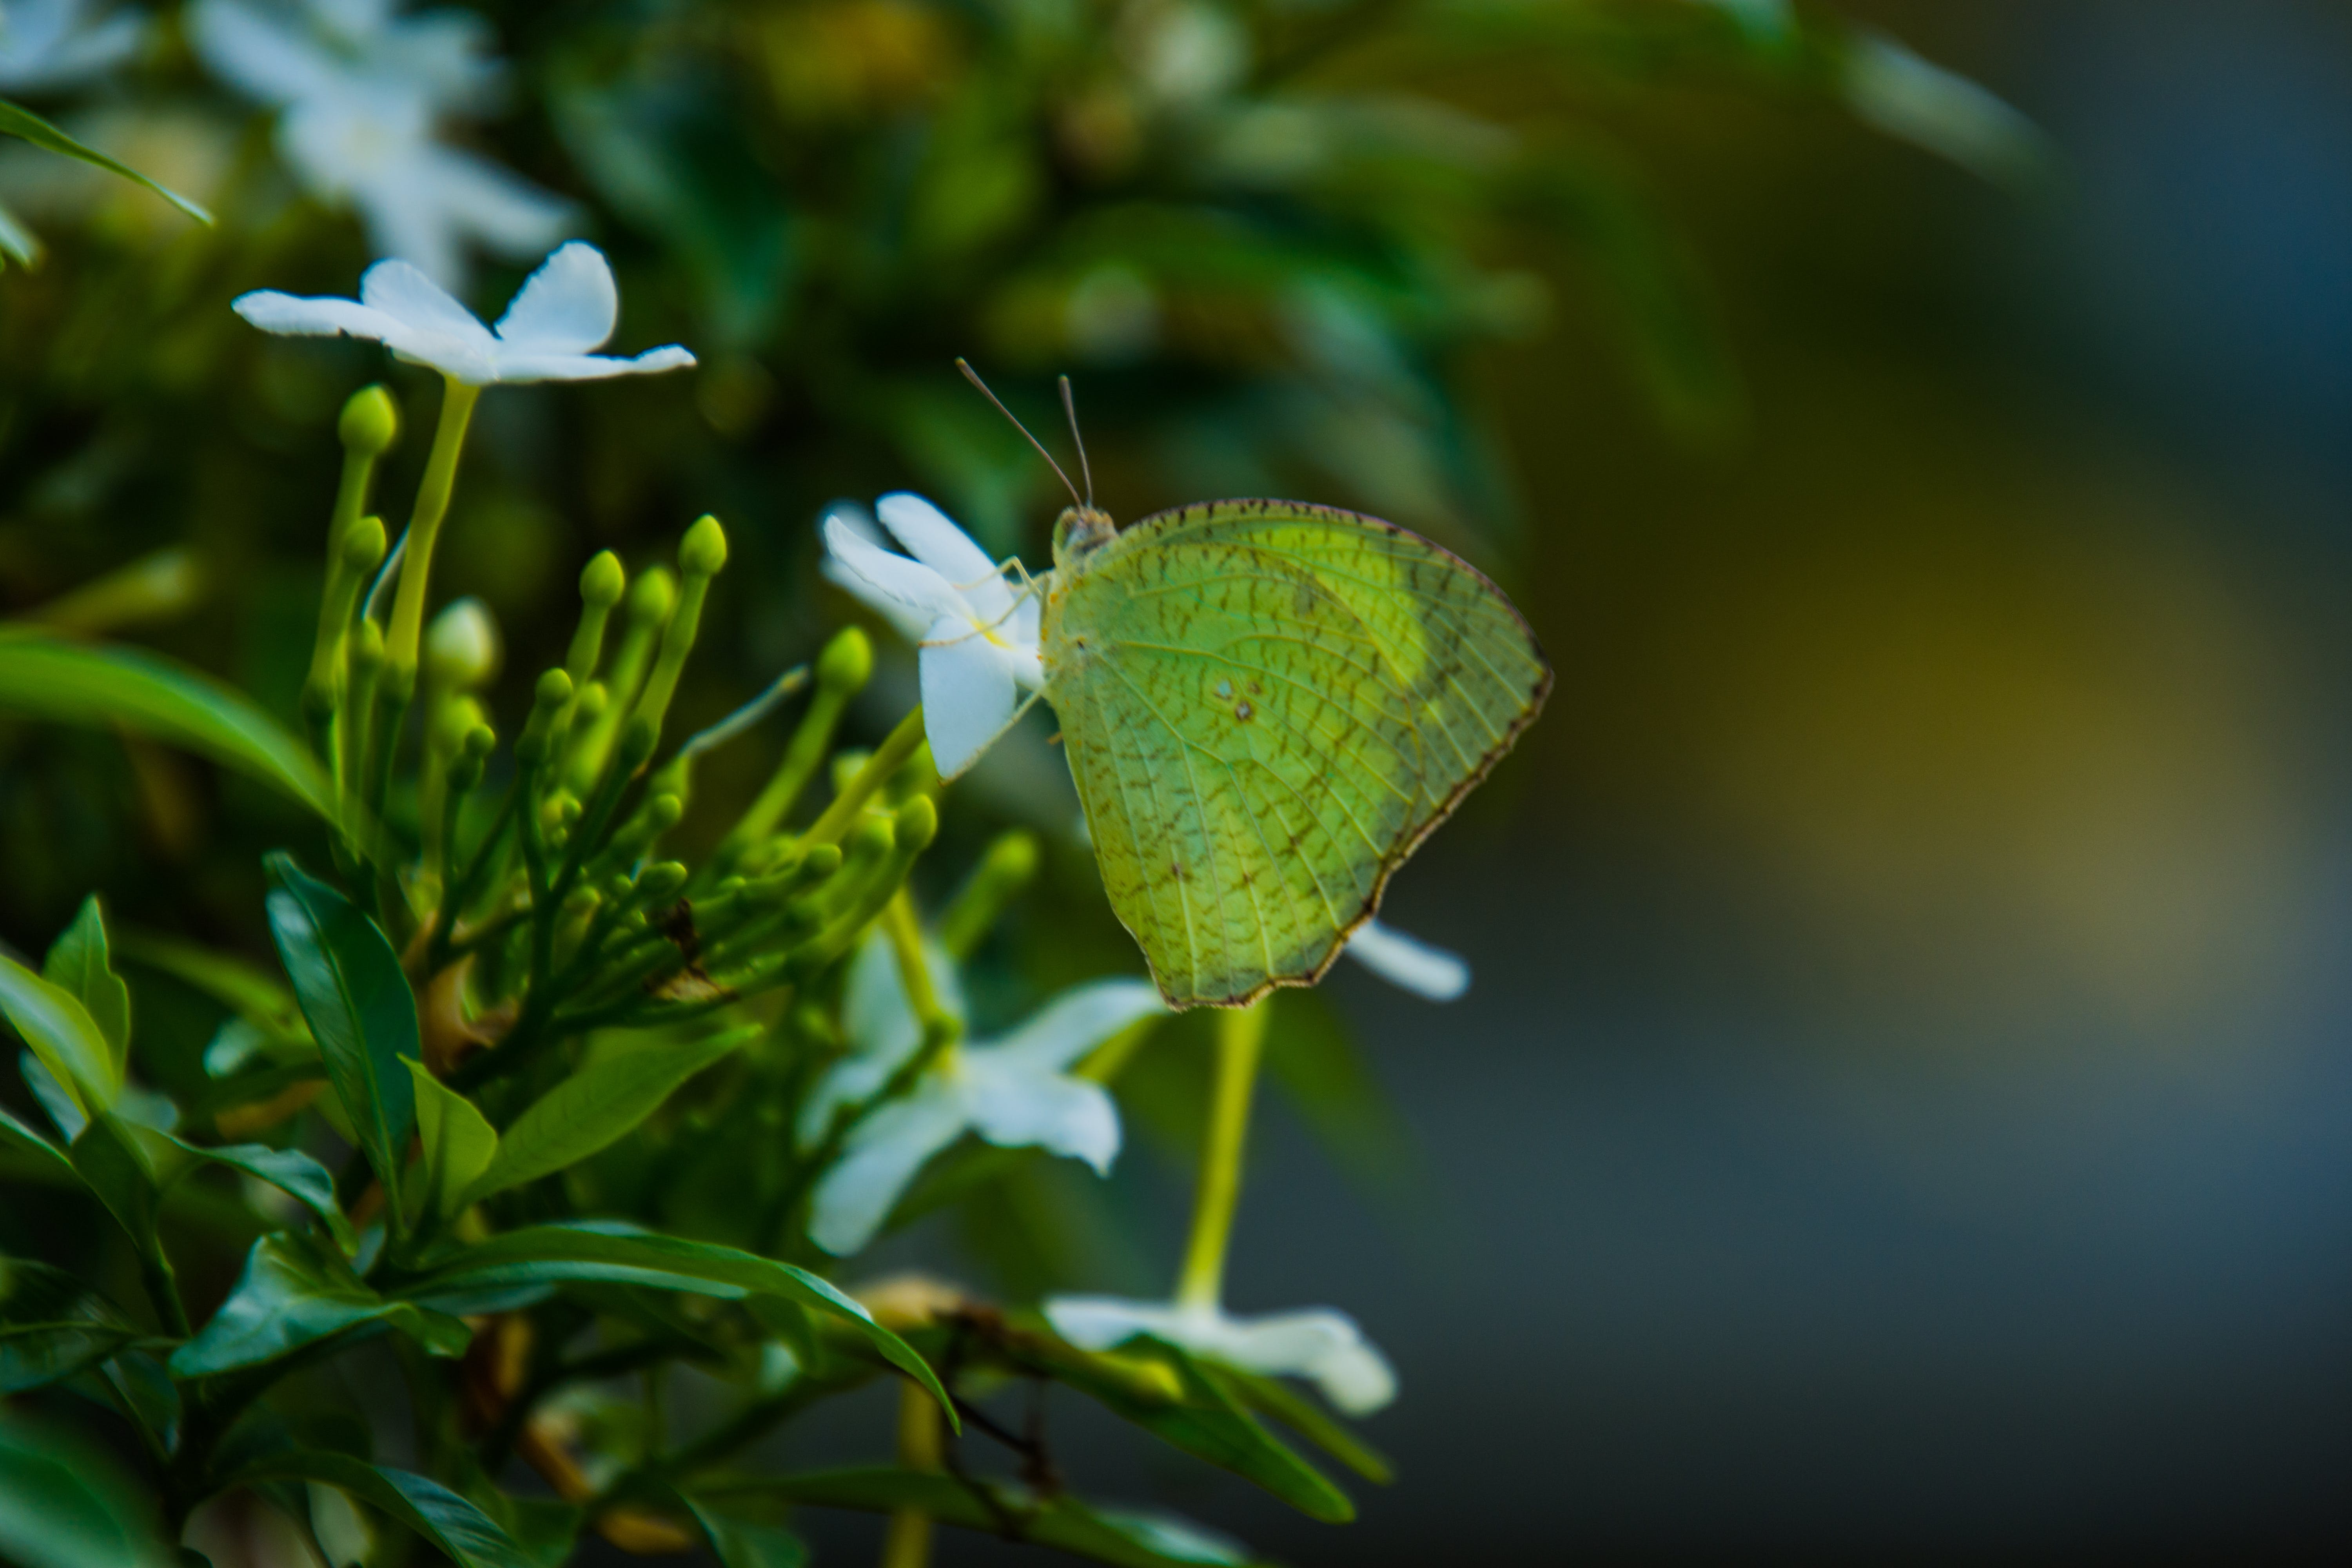 Free stock photo of butterfly, butterfly on a flower, green, nature photography